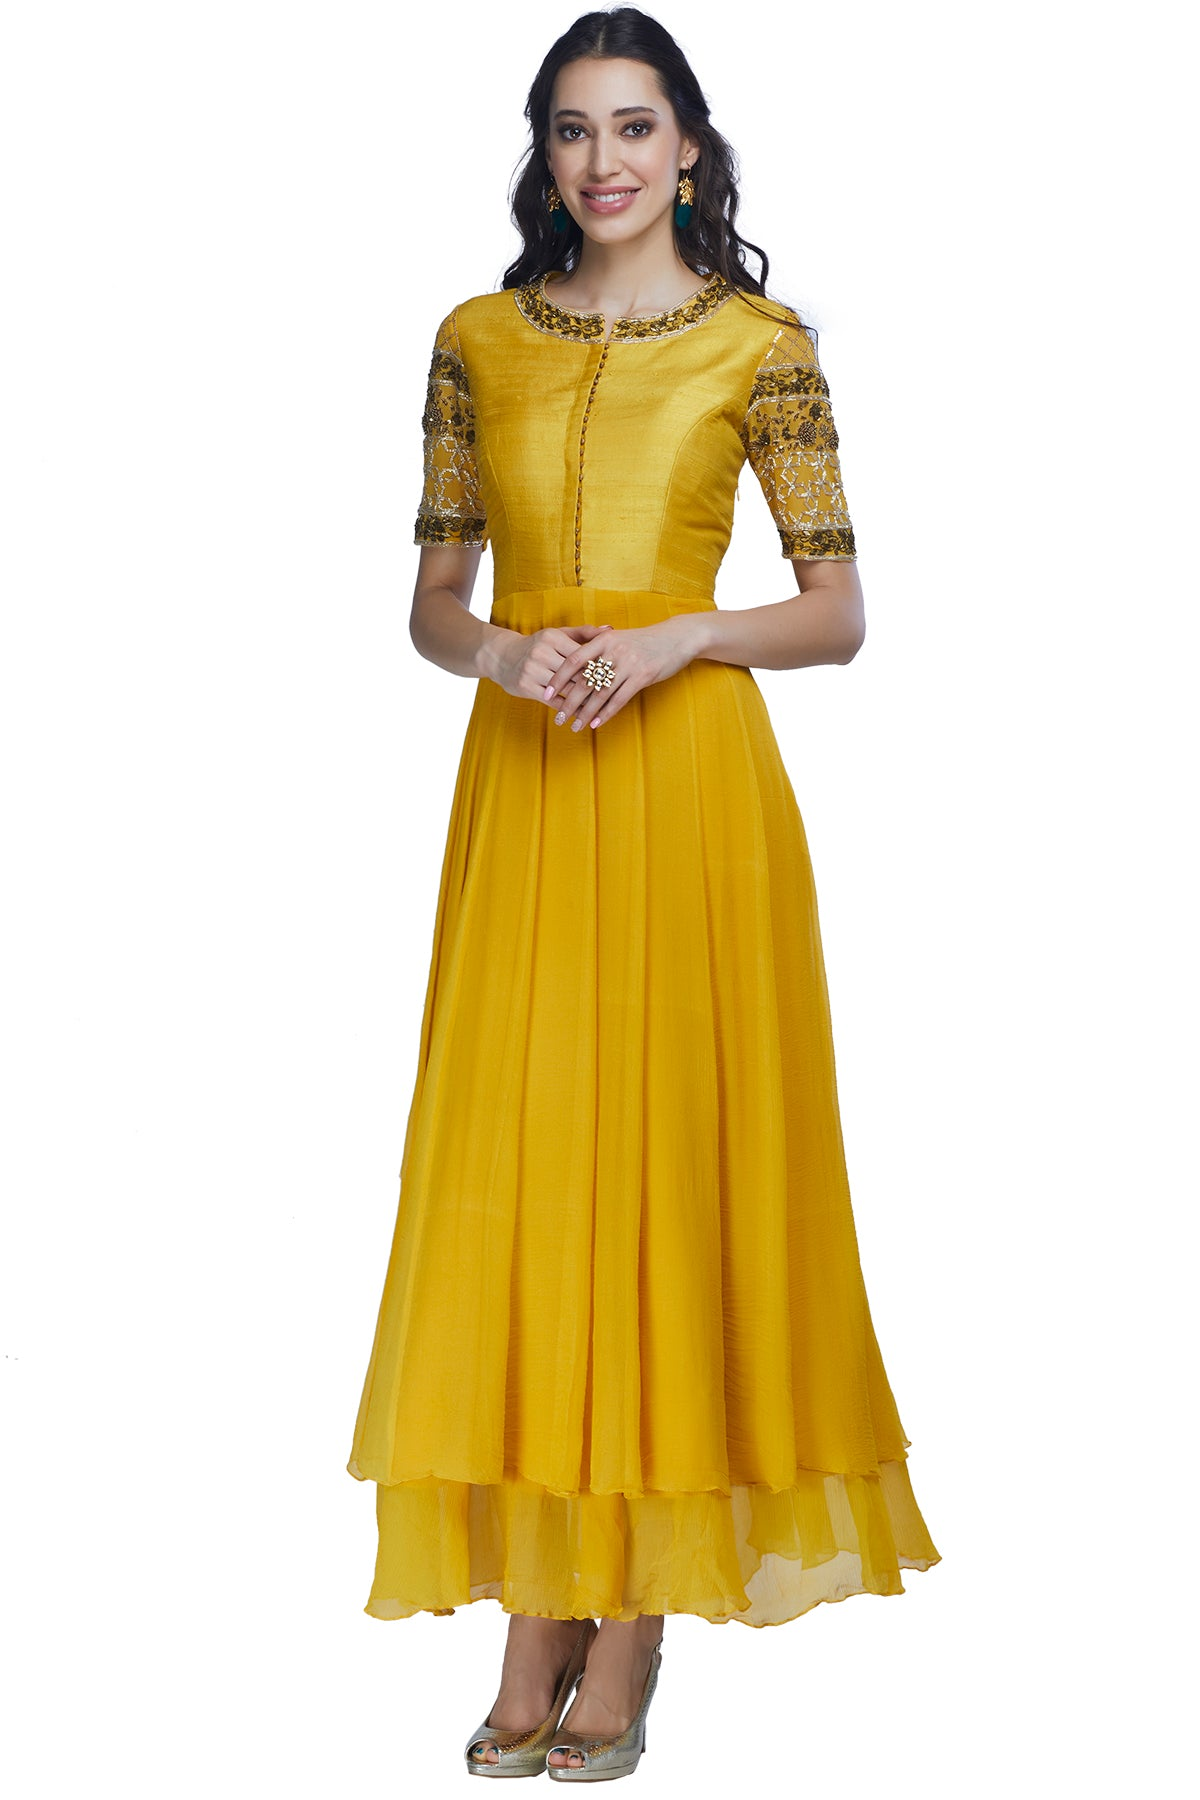 It's time to double the celebrations! This outfit, like a slice of promising sunshine, is turmeric coloured double-layered chiffon anarkali gown with a raw silk body and embroidered chiffon sleeves.